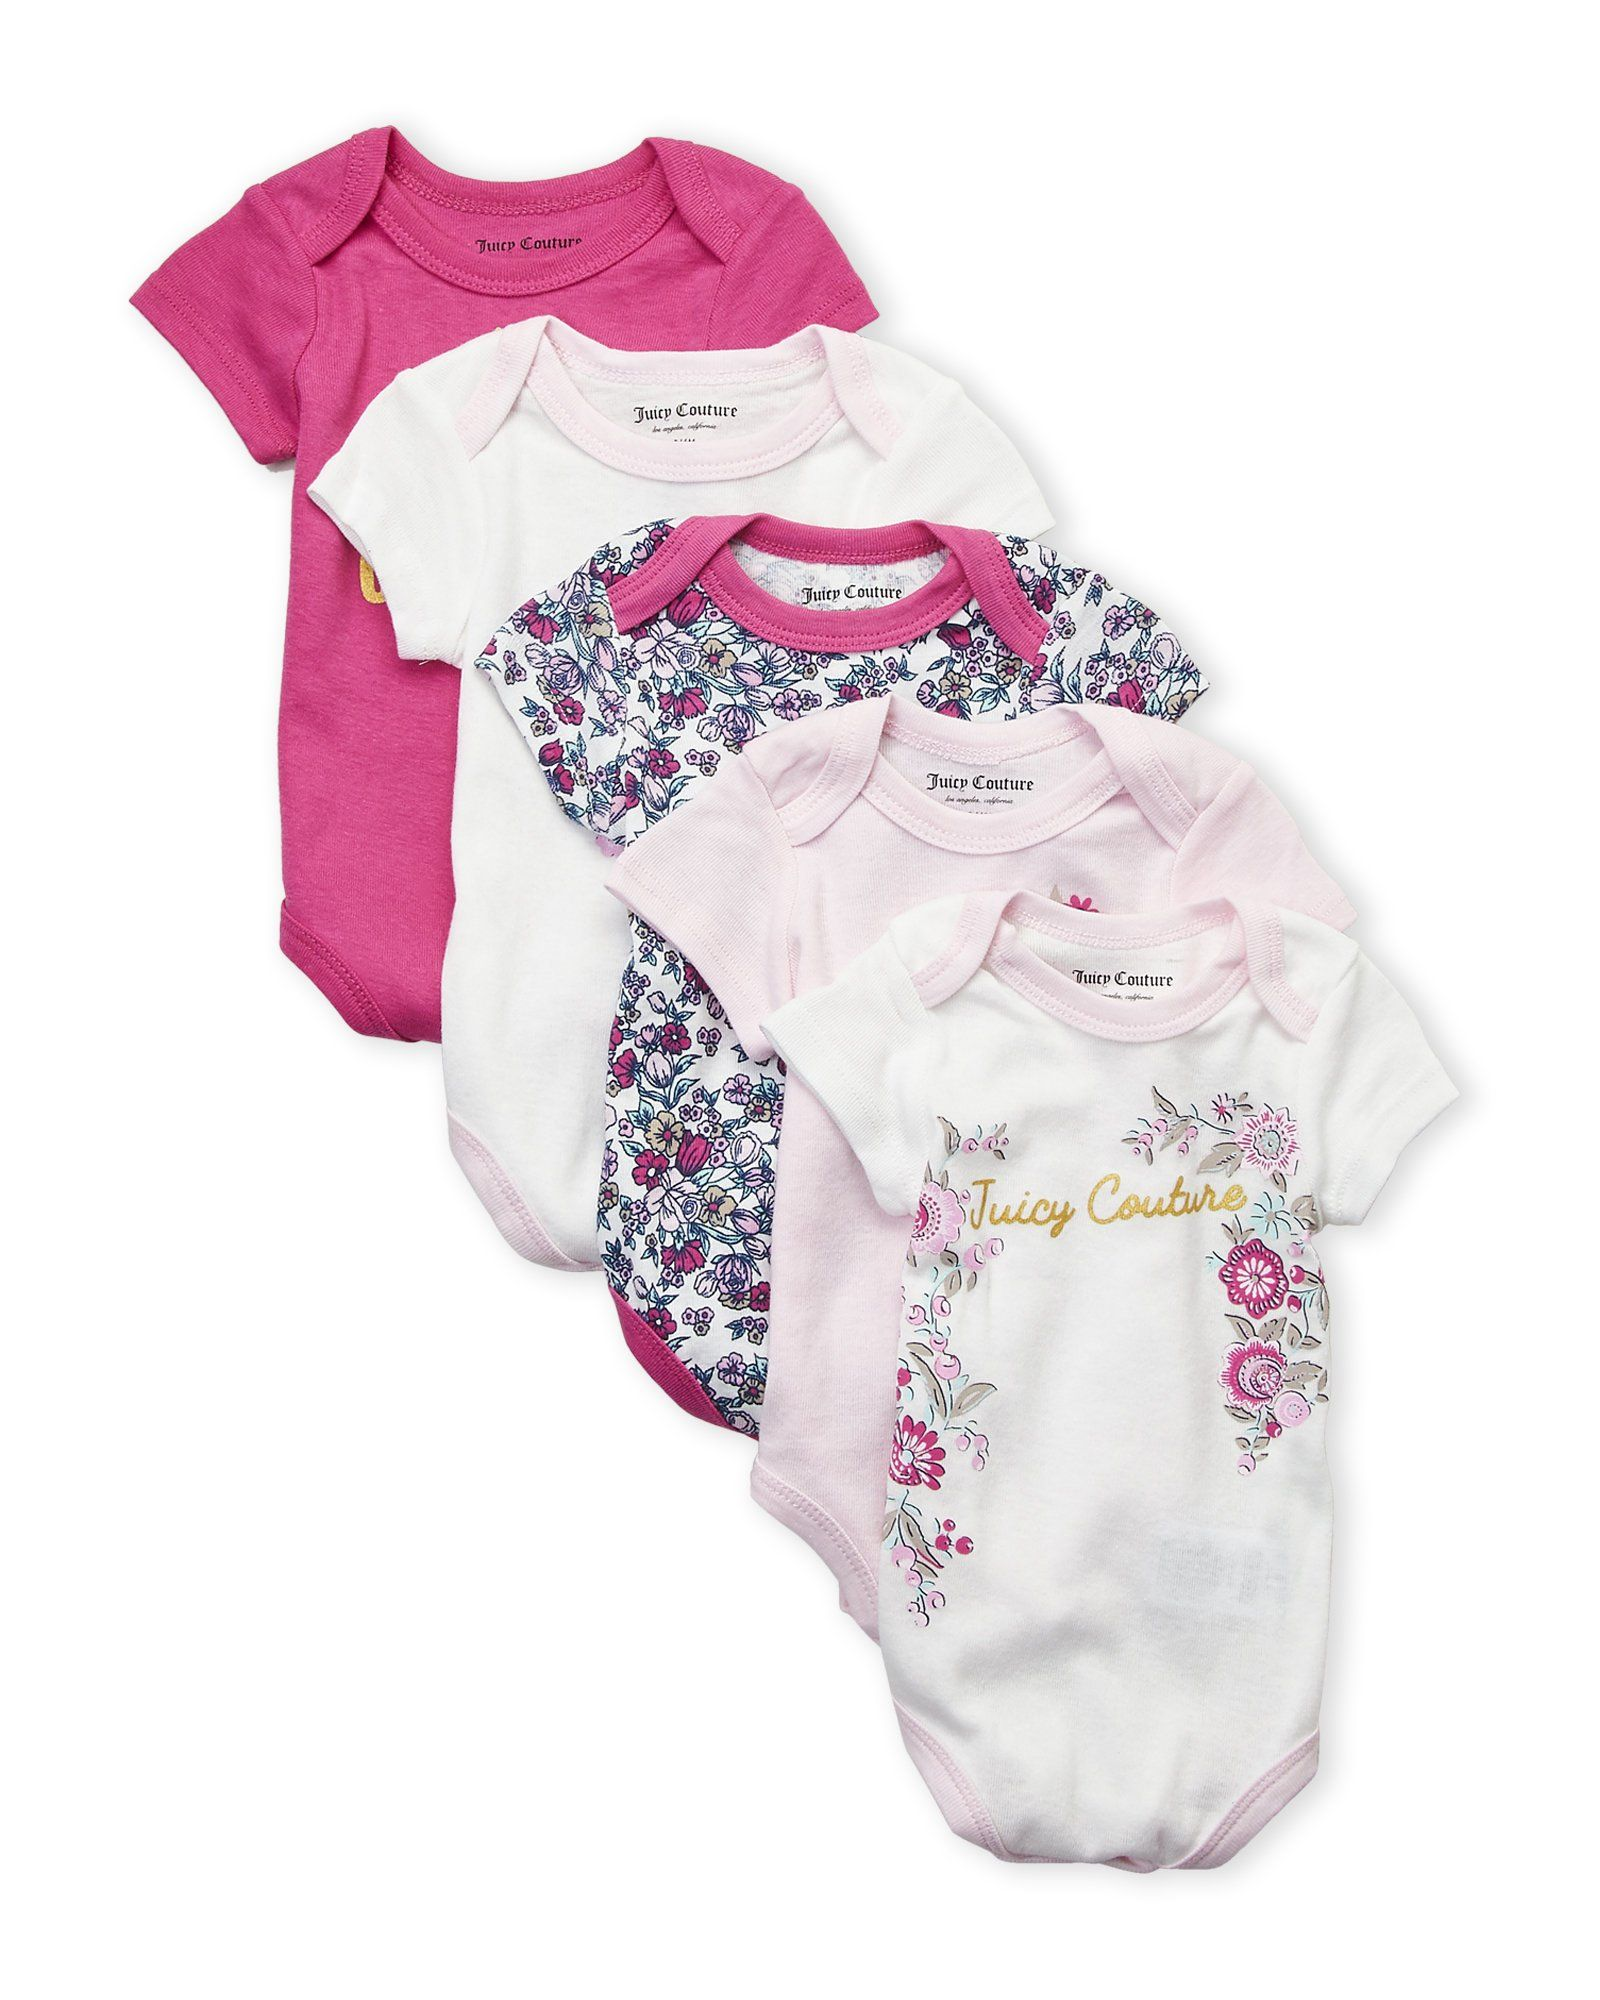 958b75575 JUICY COUTURE Infant Baby Girl 5-Pk Floral Onesie SET | Fashion For ...